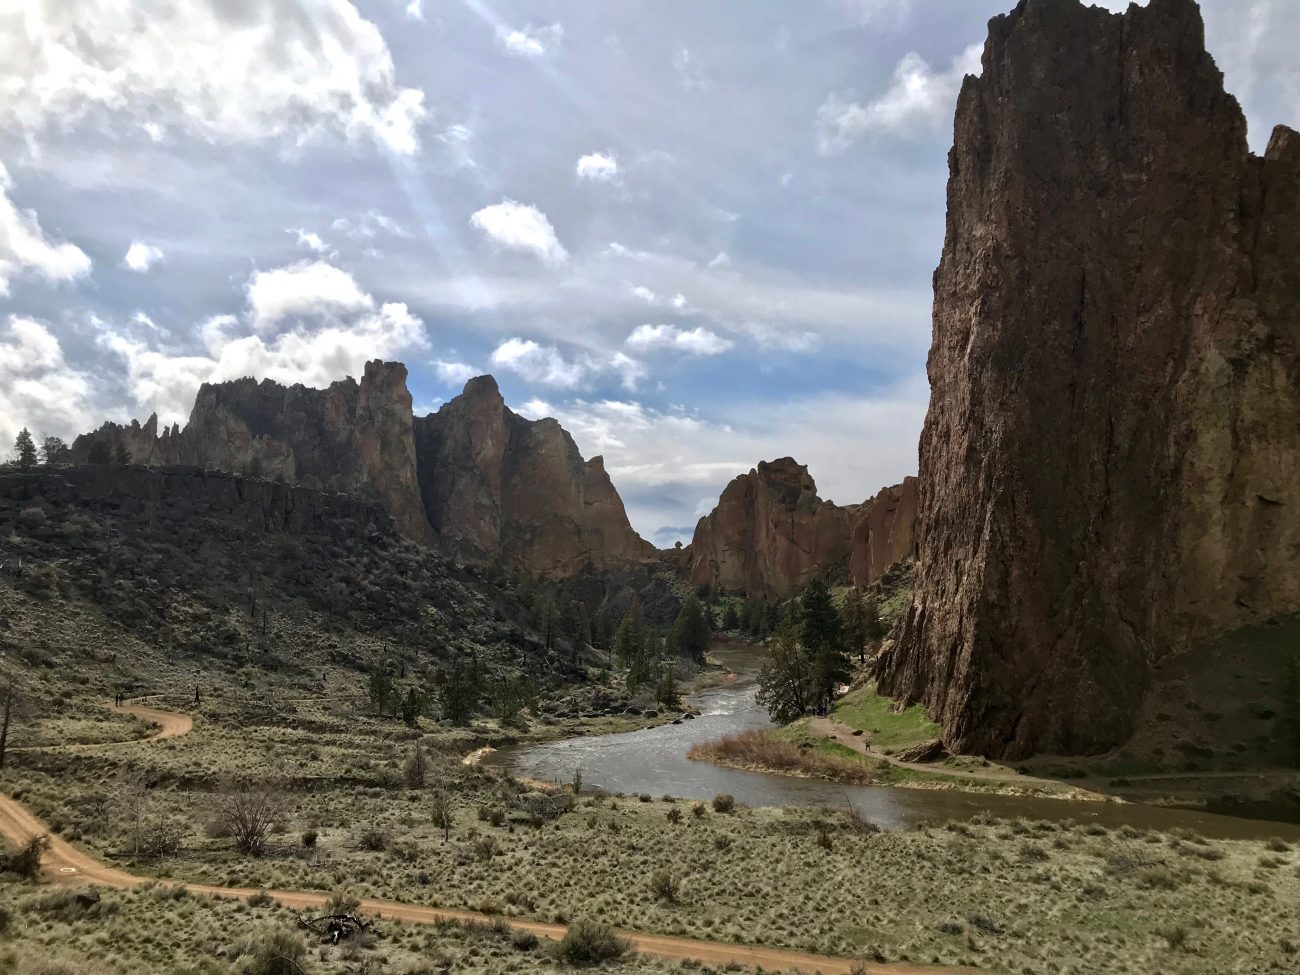 Hiking near Bend - Smith Rocks